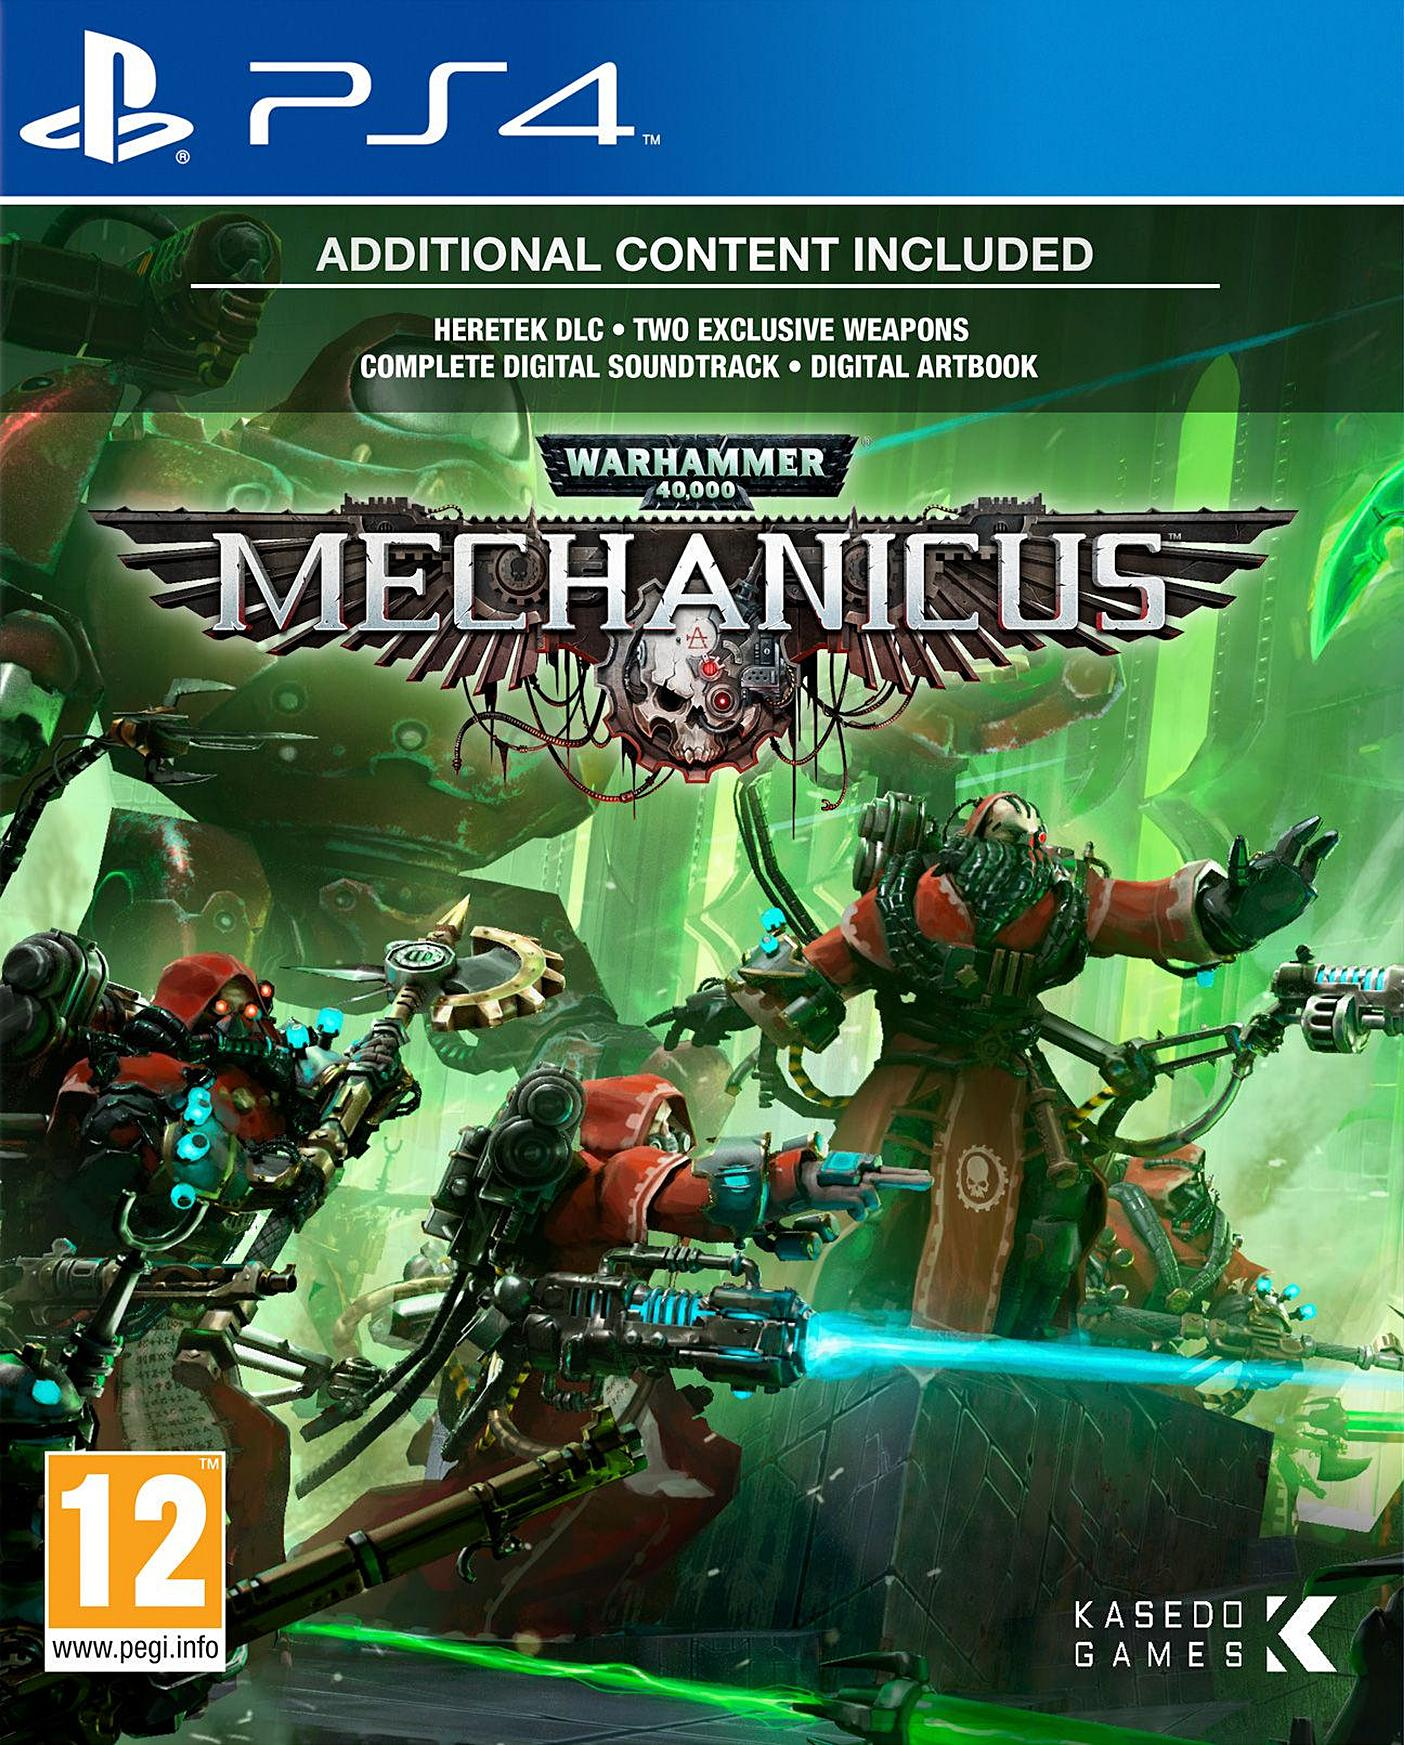 Warhammer 40,000: Mechanicus [PS4] 5.05 / 6.72 / 7.02 [EUR] (2020) [Русский] (v1.02)